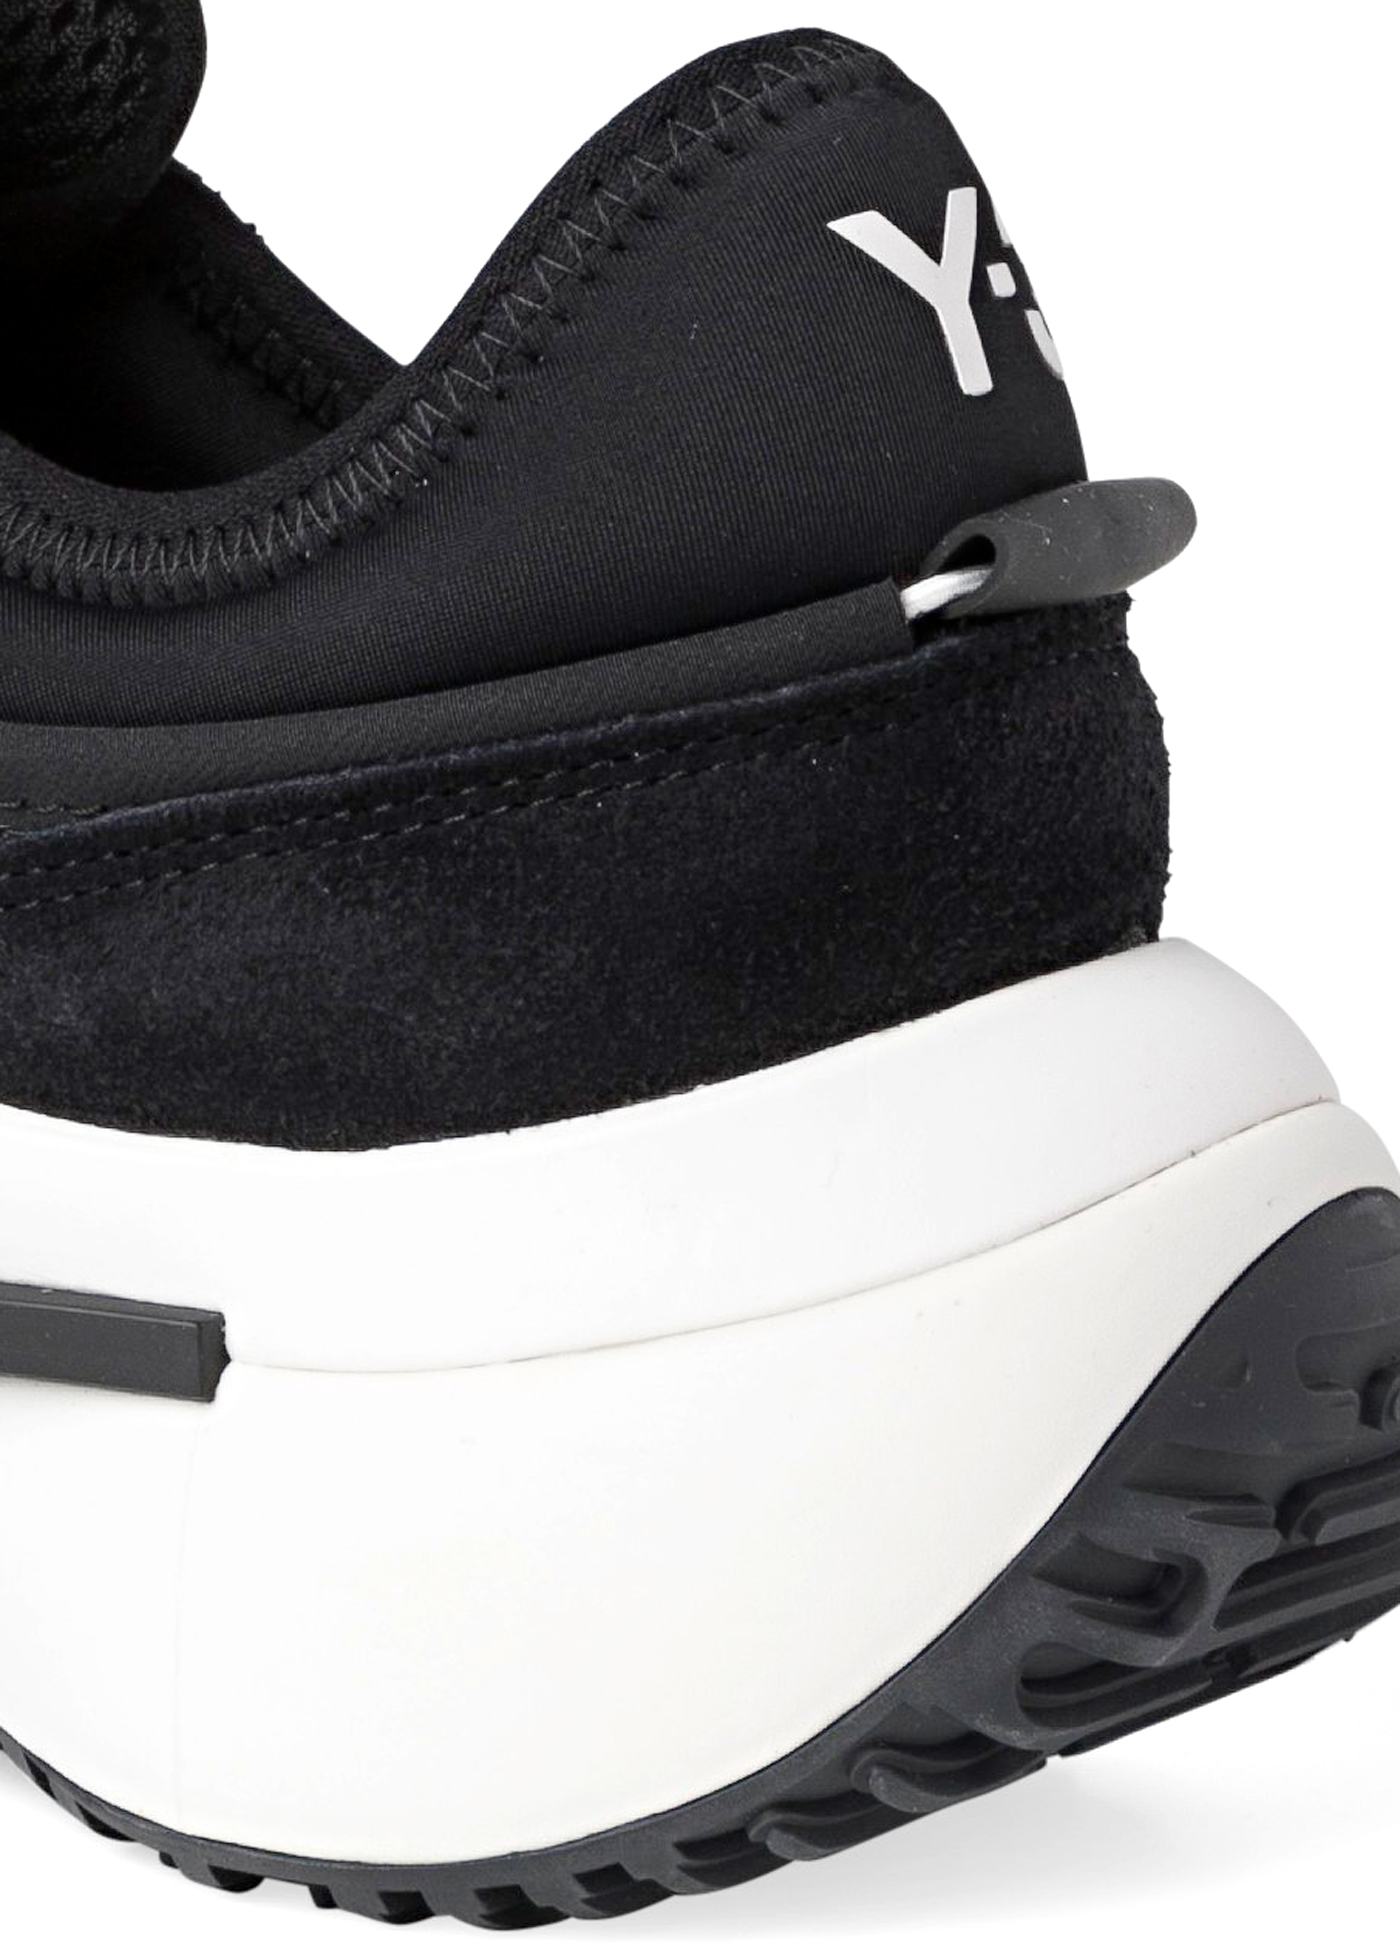 Y-3 CLASSIC RUN image number 3